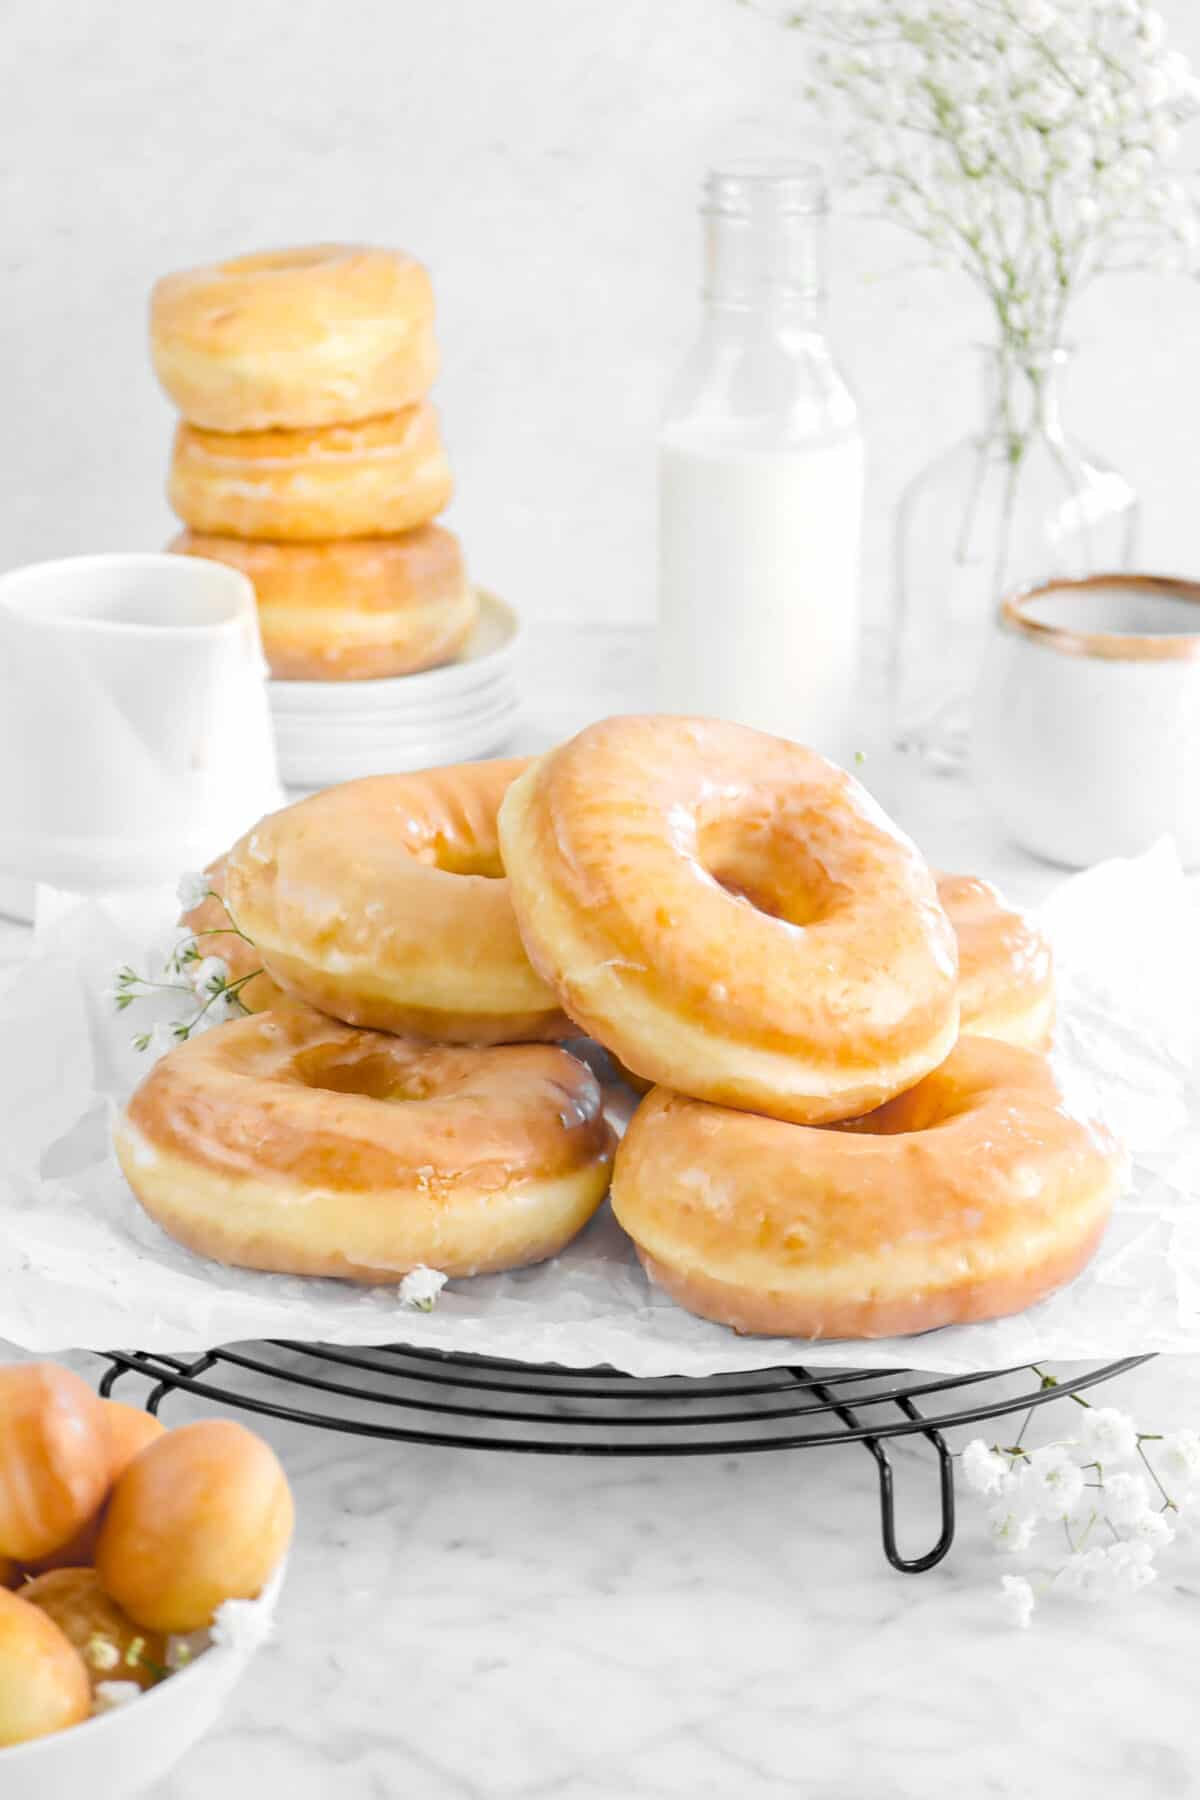 doughnuts stacked on a wire cooling rack with flowers, stacked doughnuts behind, a glass of milk, and coffee mug